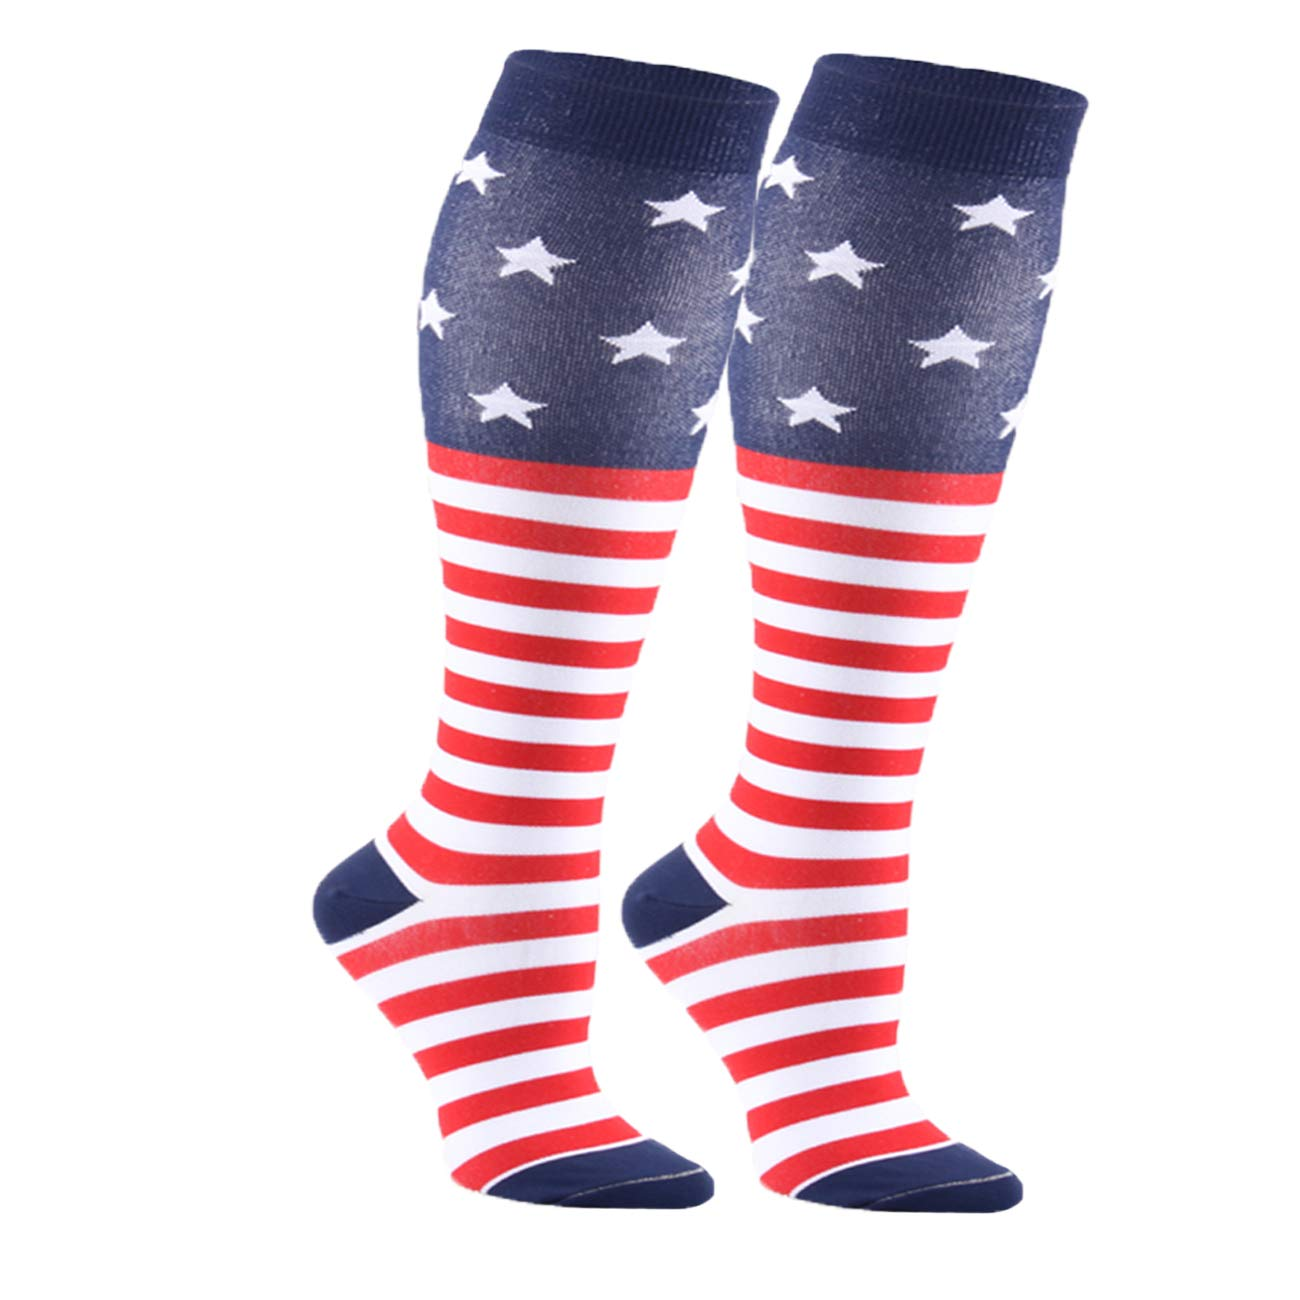 Compression Colorful Stars Stripes Socks Women Men Students High Performance (American flag/2 Pairs) by MOAIR